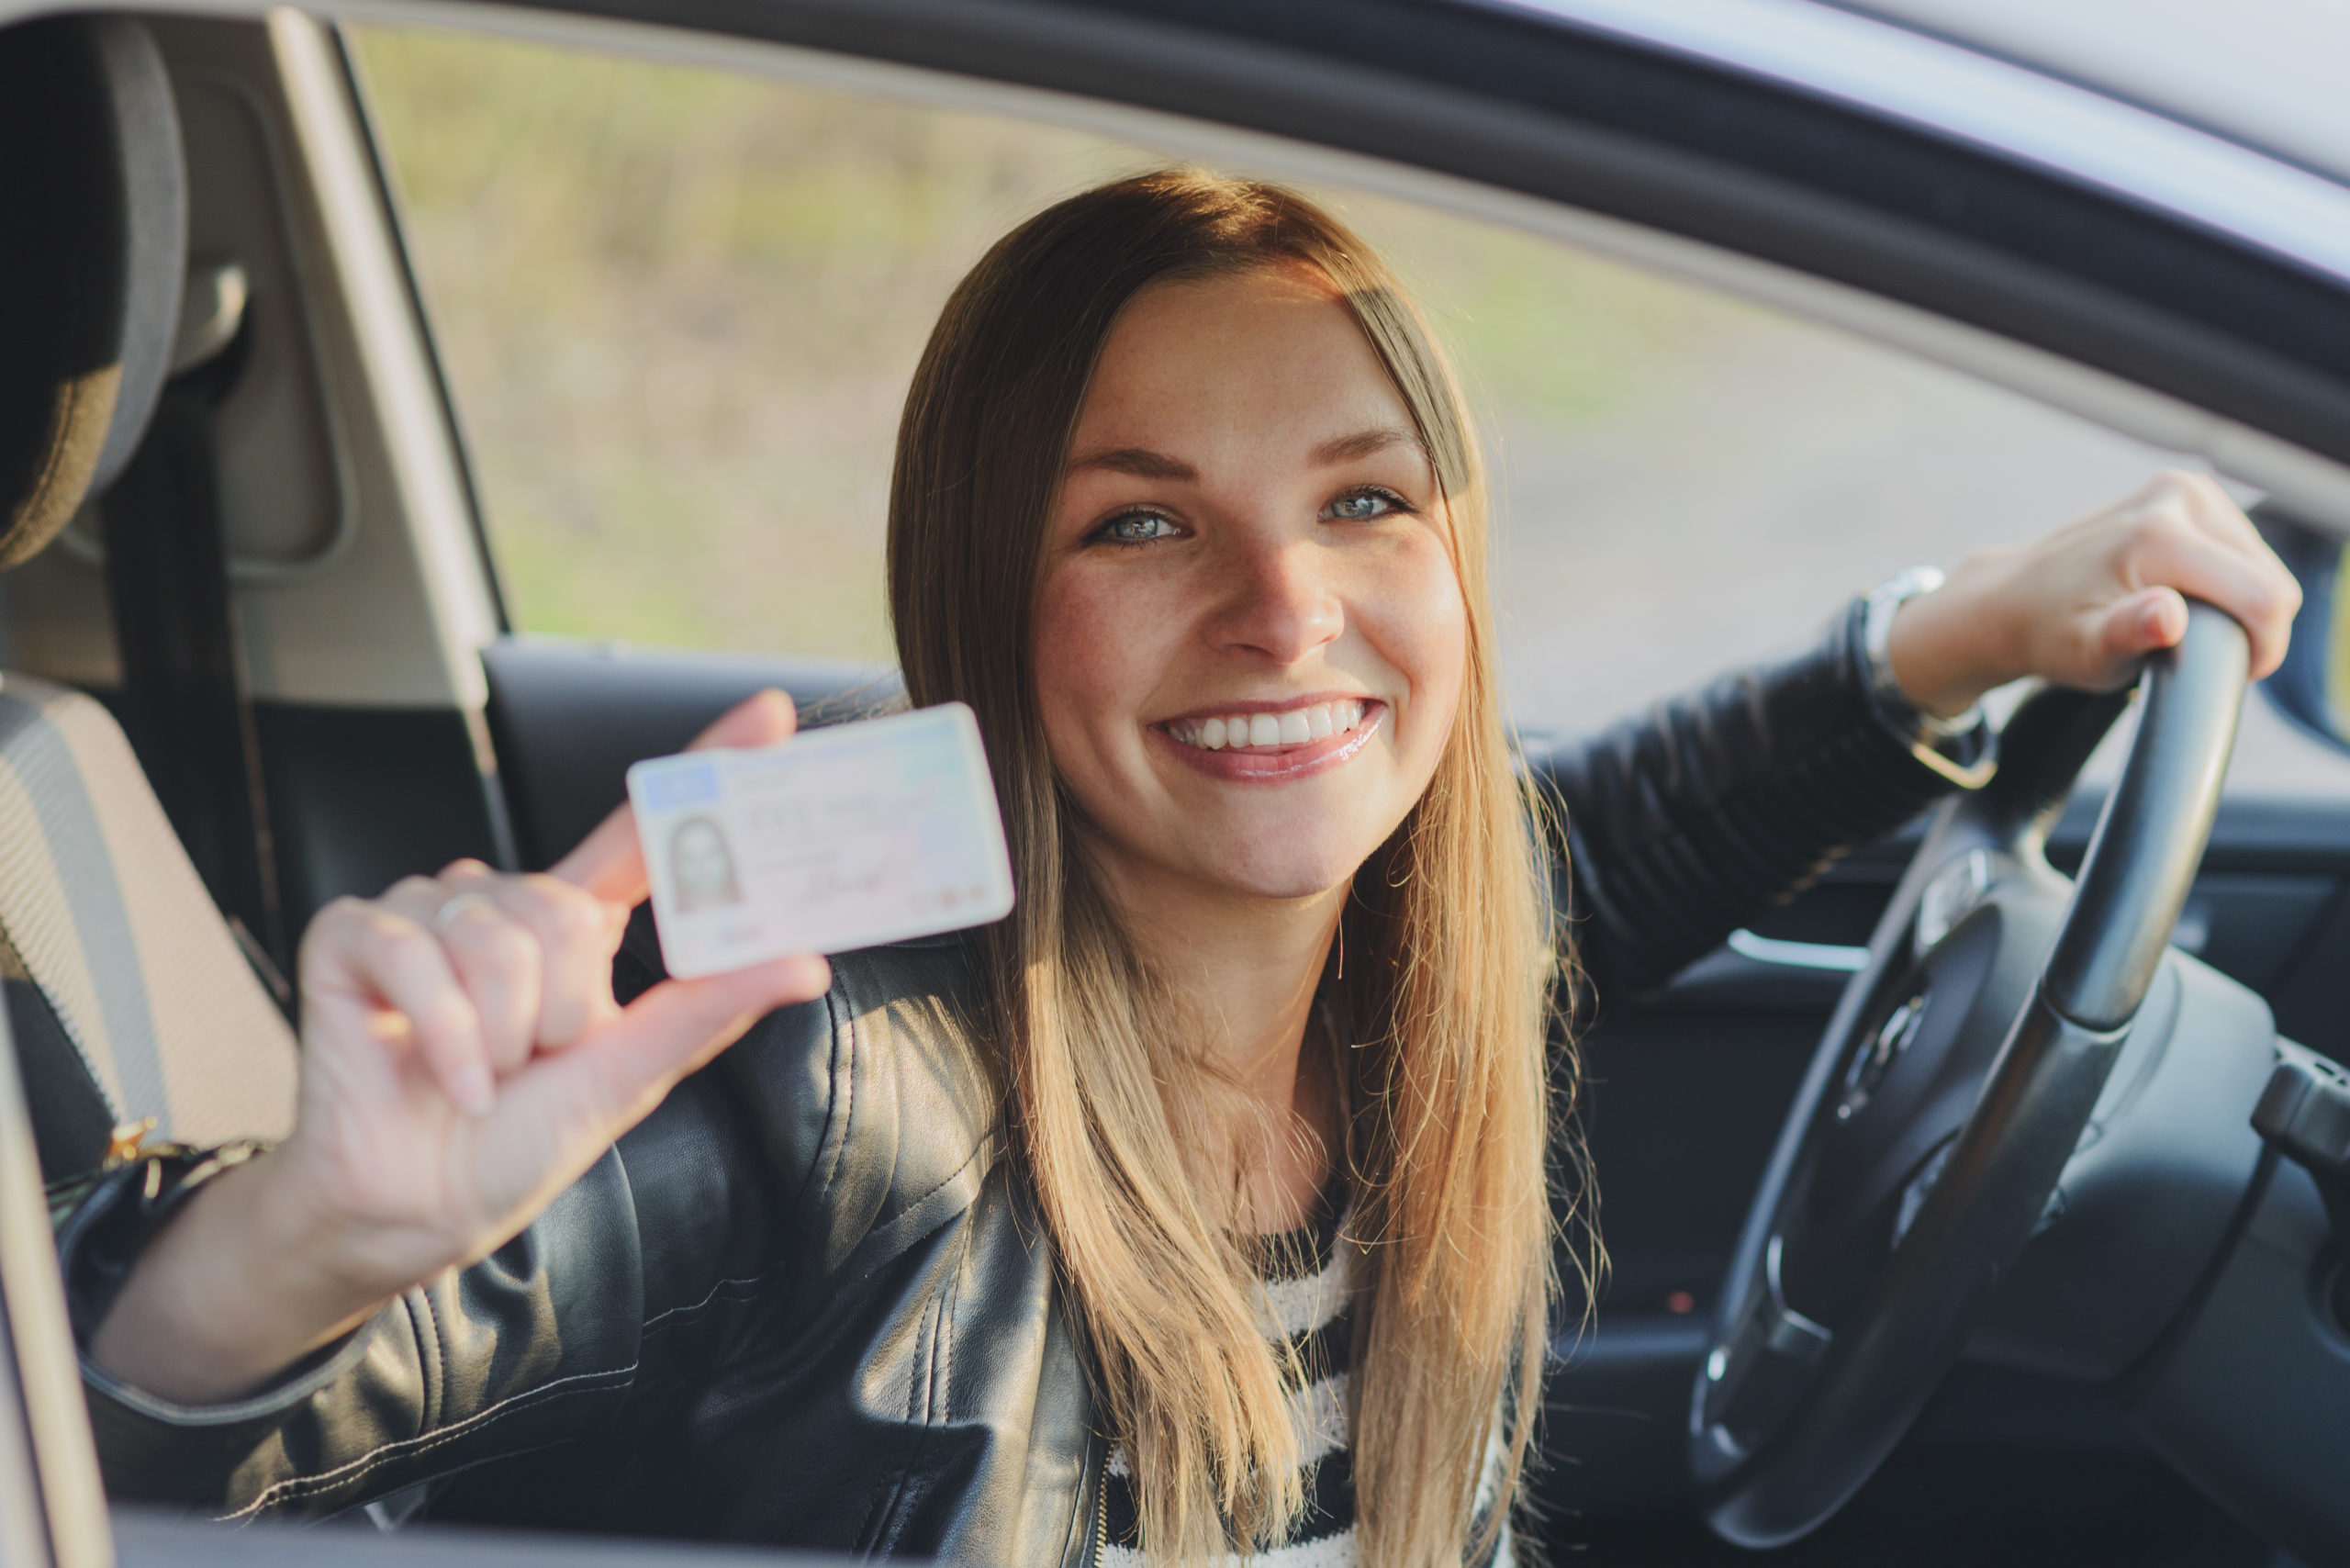 10 Best Gifts for New Drivers in 2021 [Buying Guide]